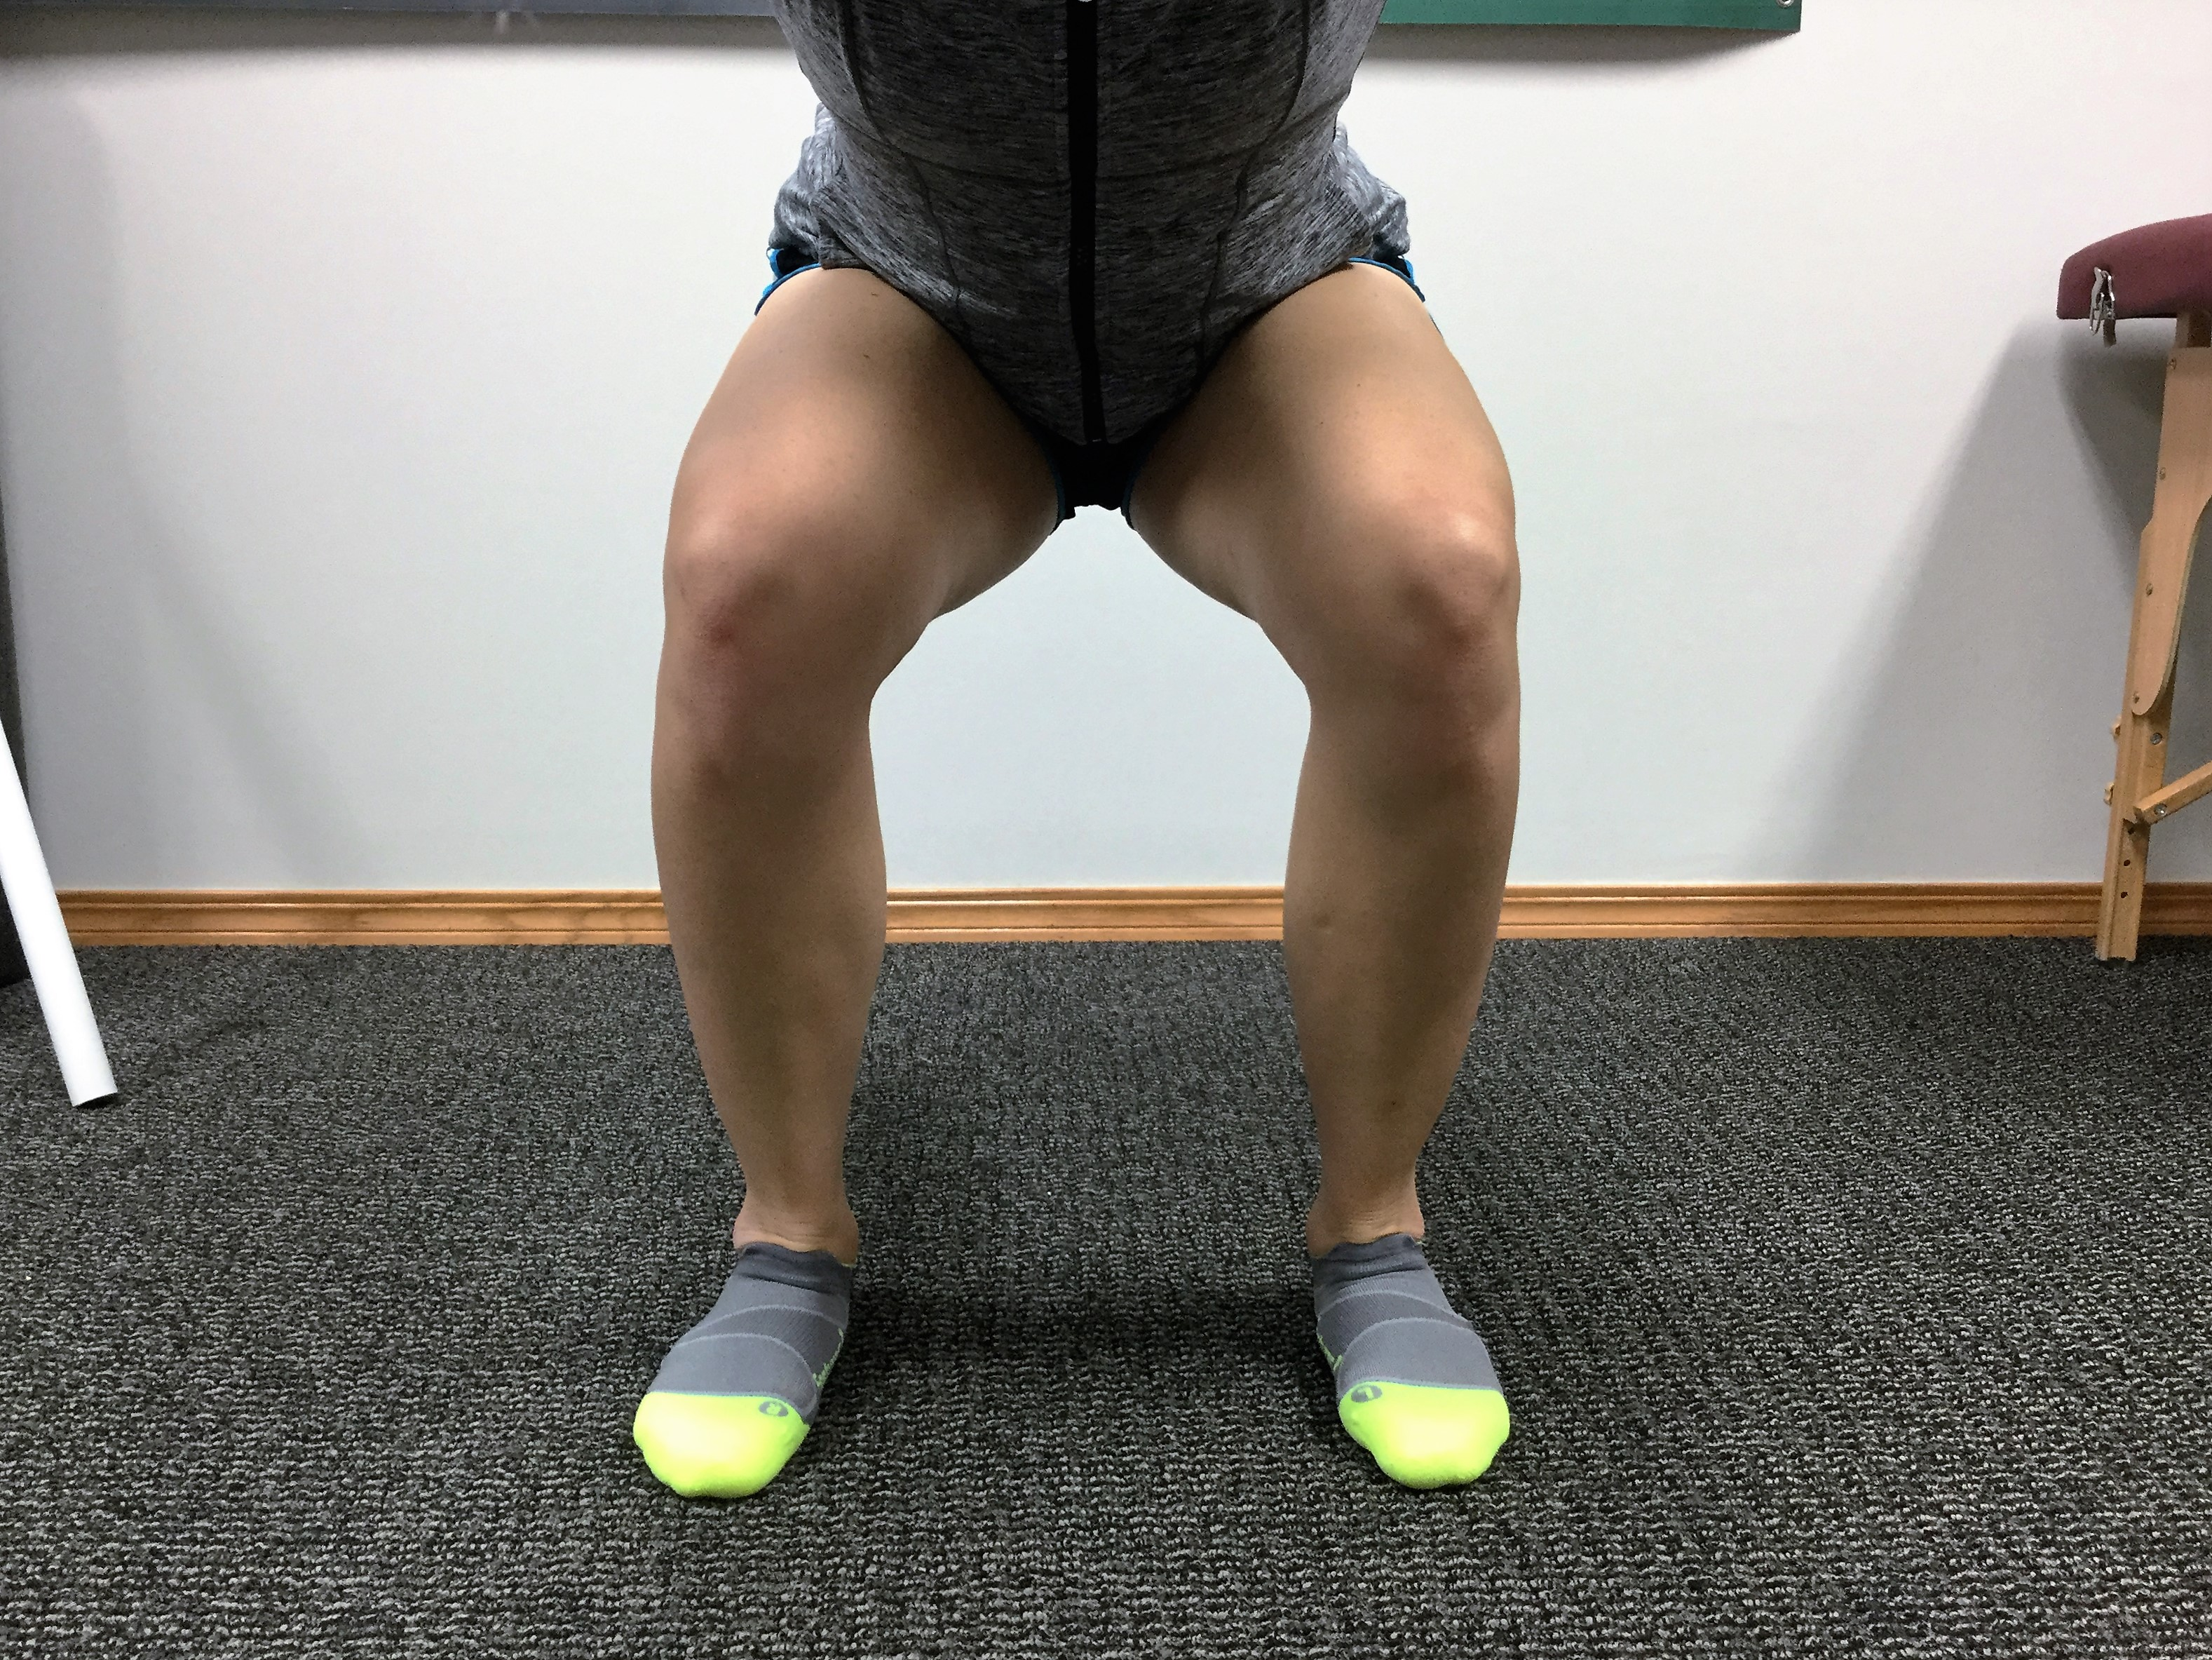 NOT Knees In